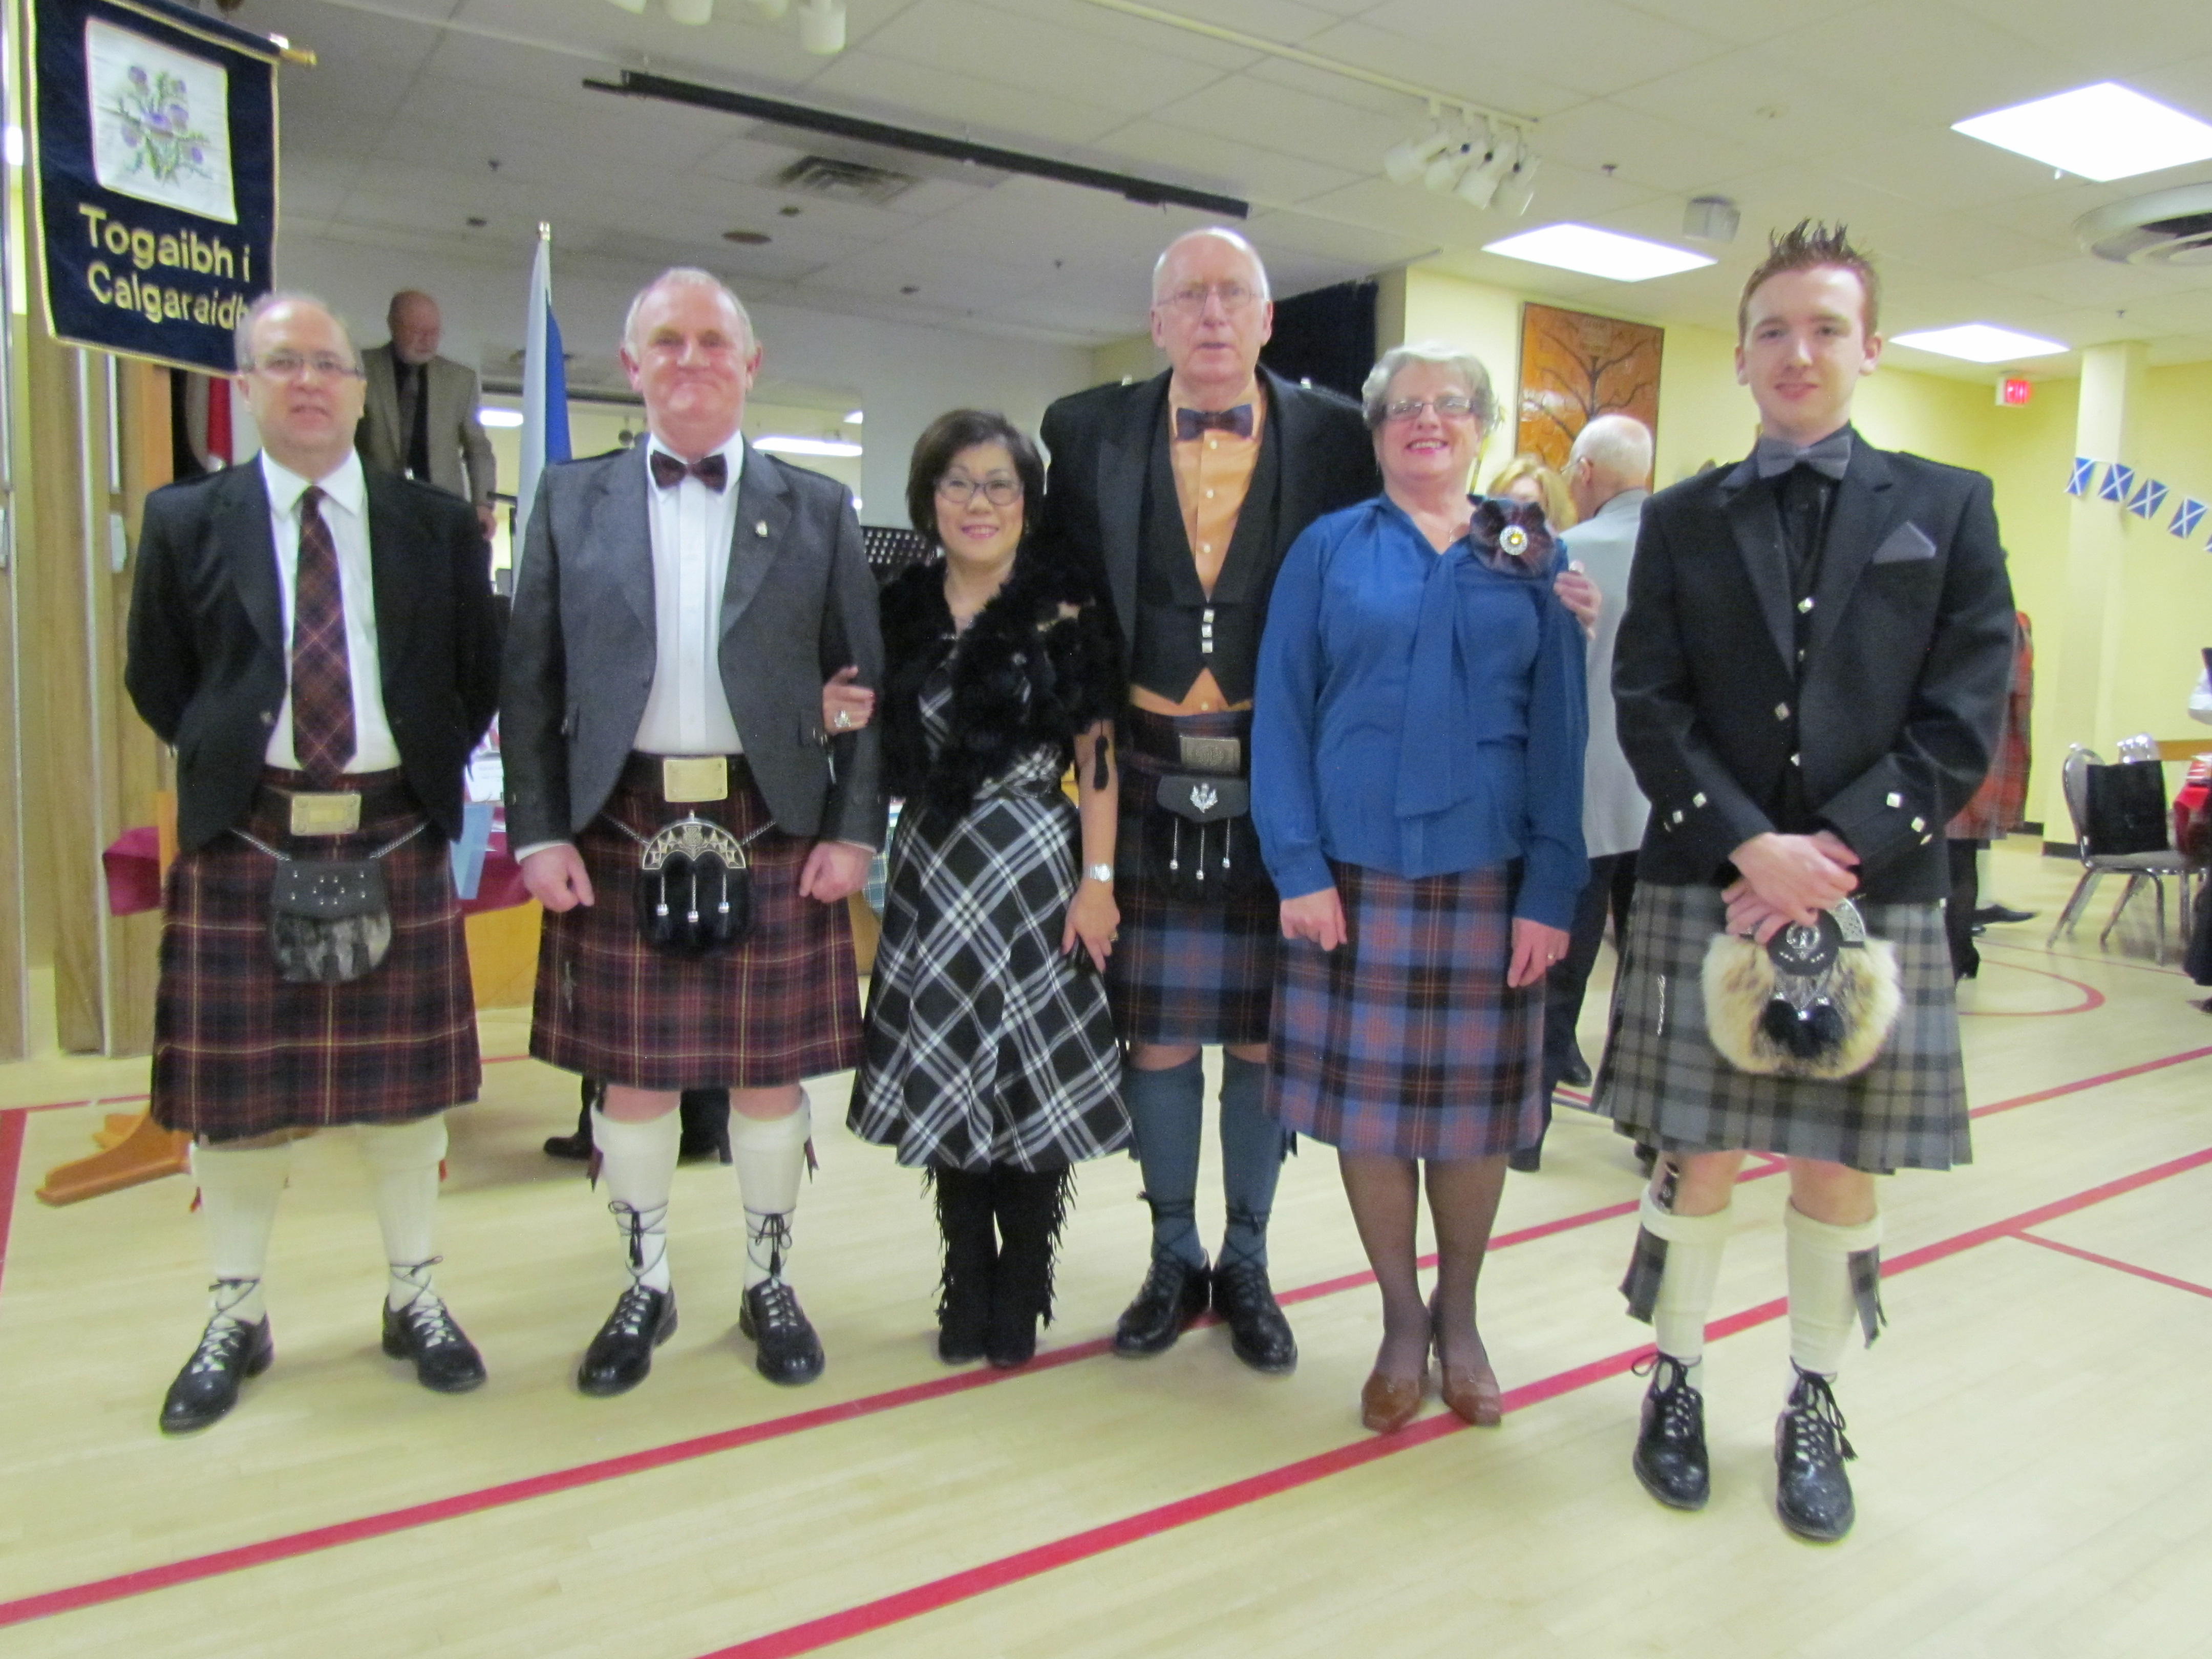 2013 Robbie Burns Dinner 02